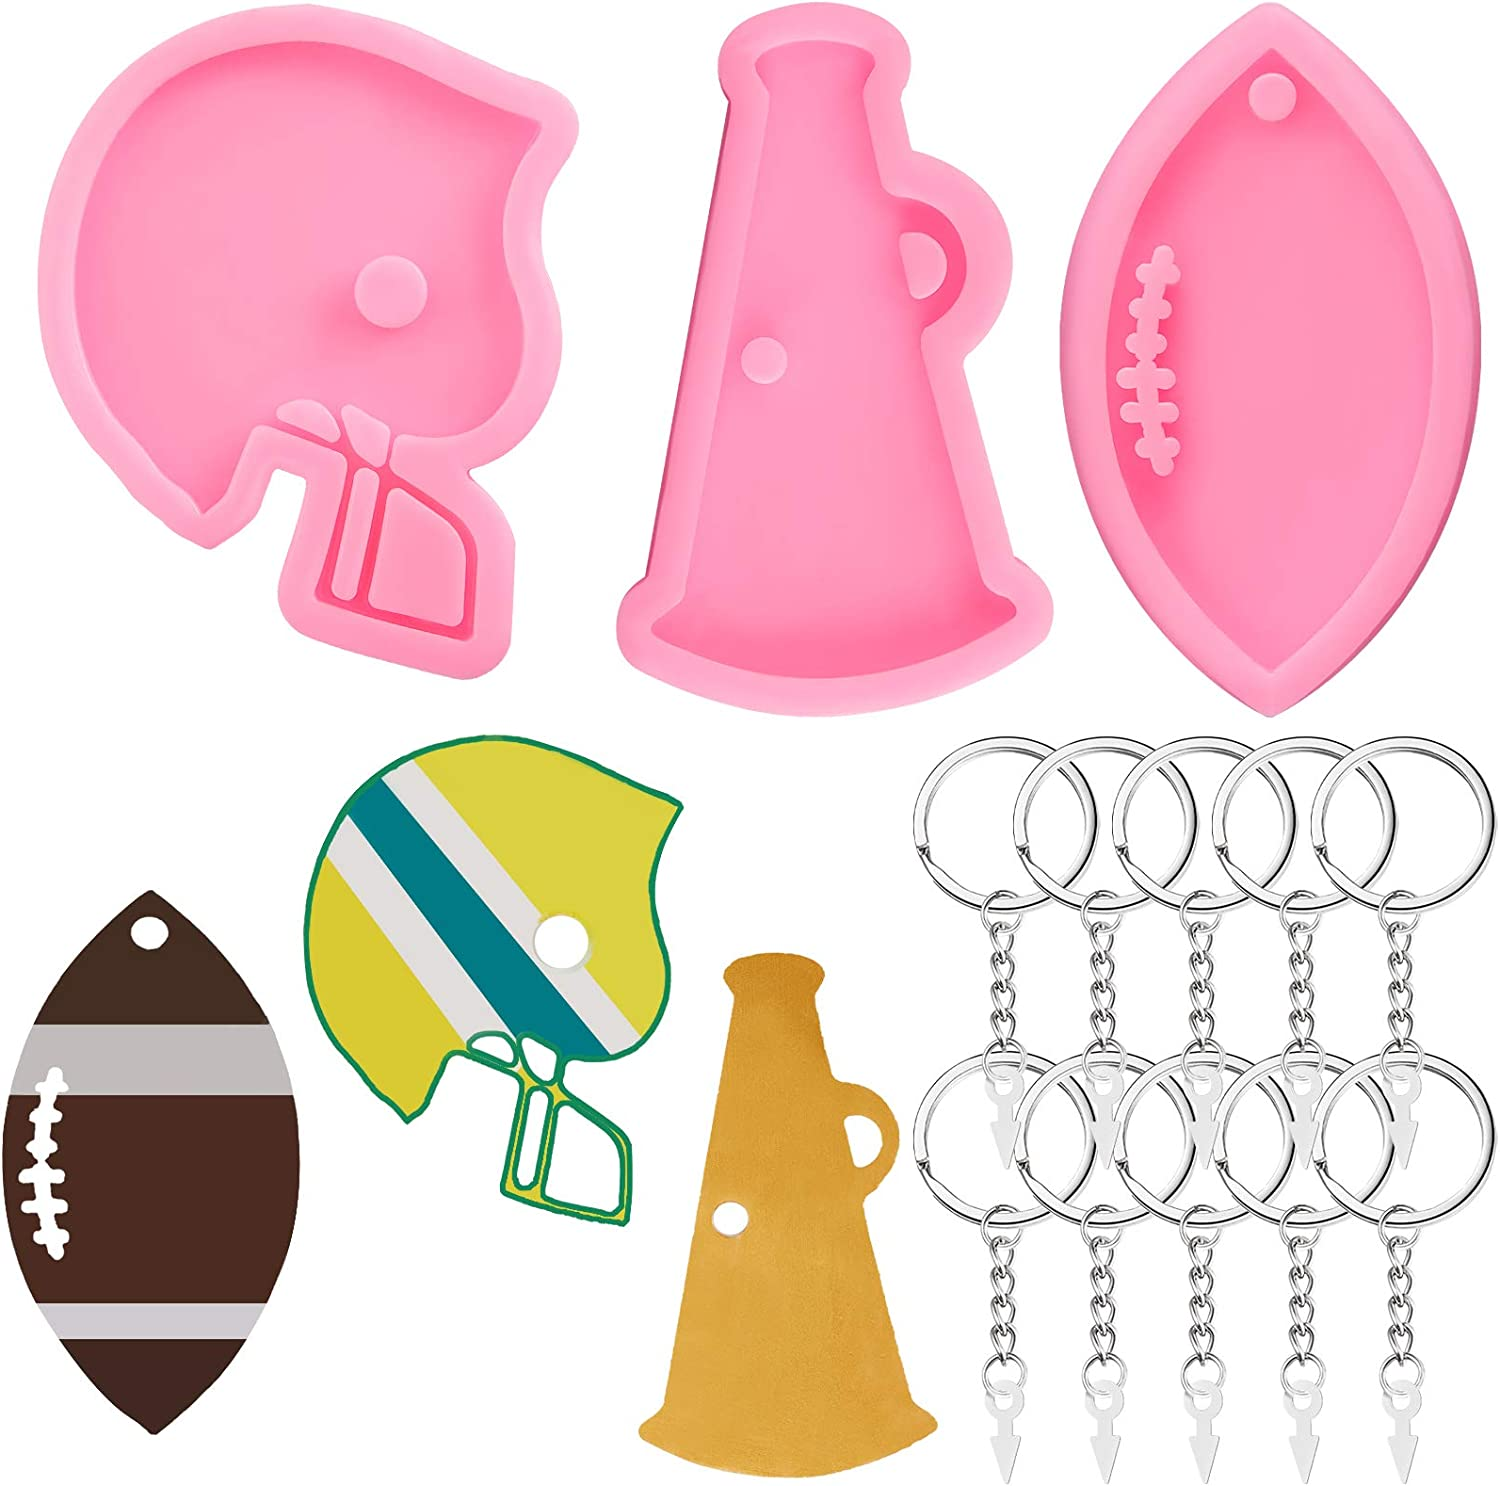 3 Pieces Football Silicone Keychain Mold Helmet Megaphone Fondant Mold Rugby Keychain Pendant Clay Mold with 10 Pieces Key Rings for Making Keychains Desserts Soaps